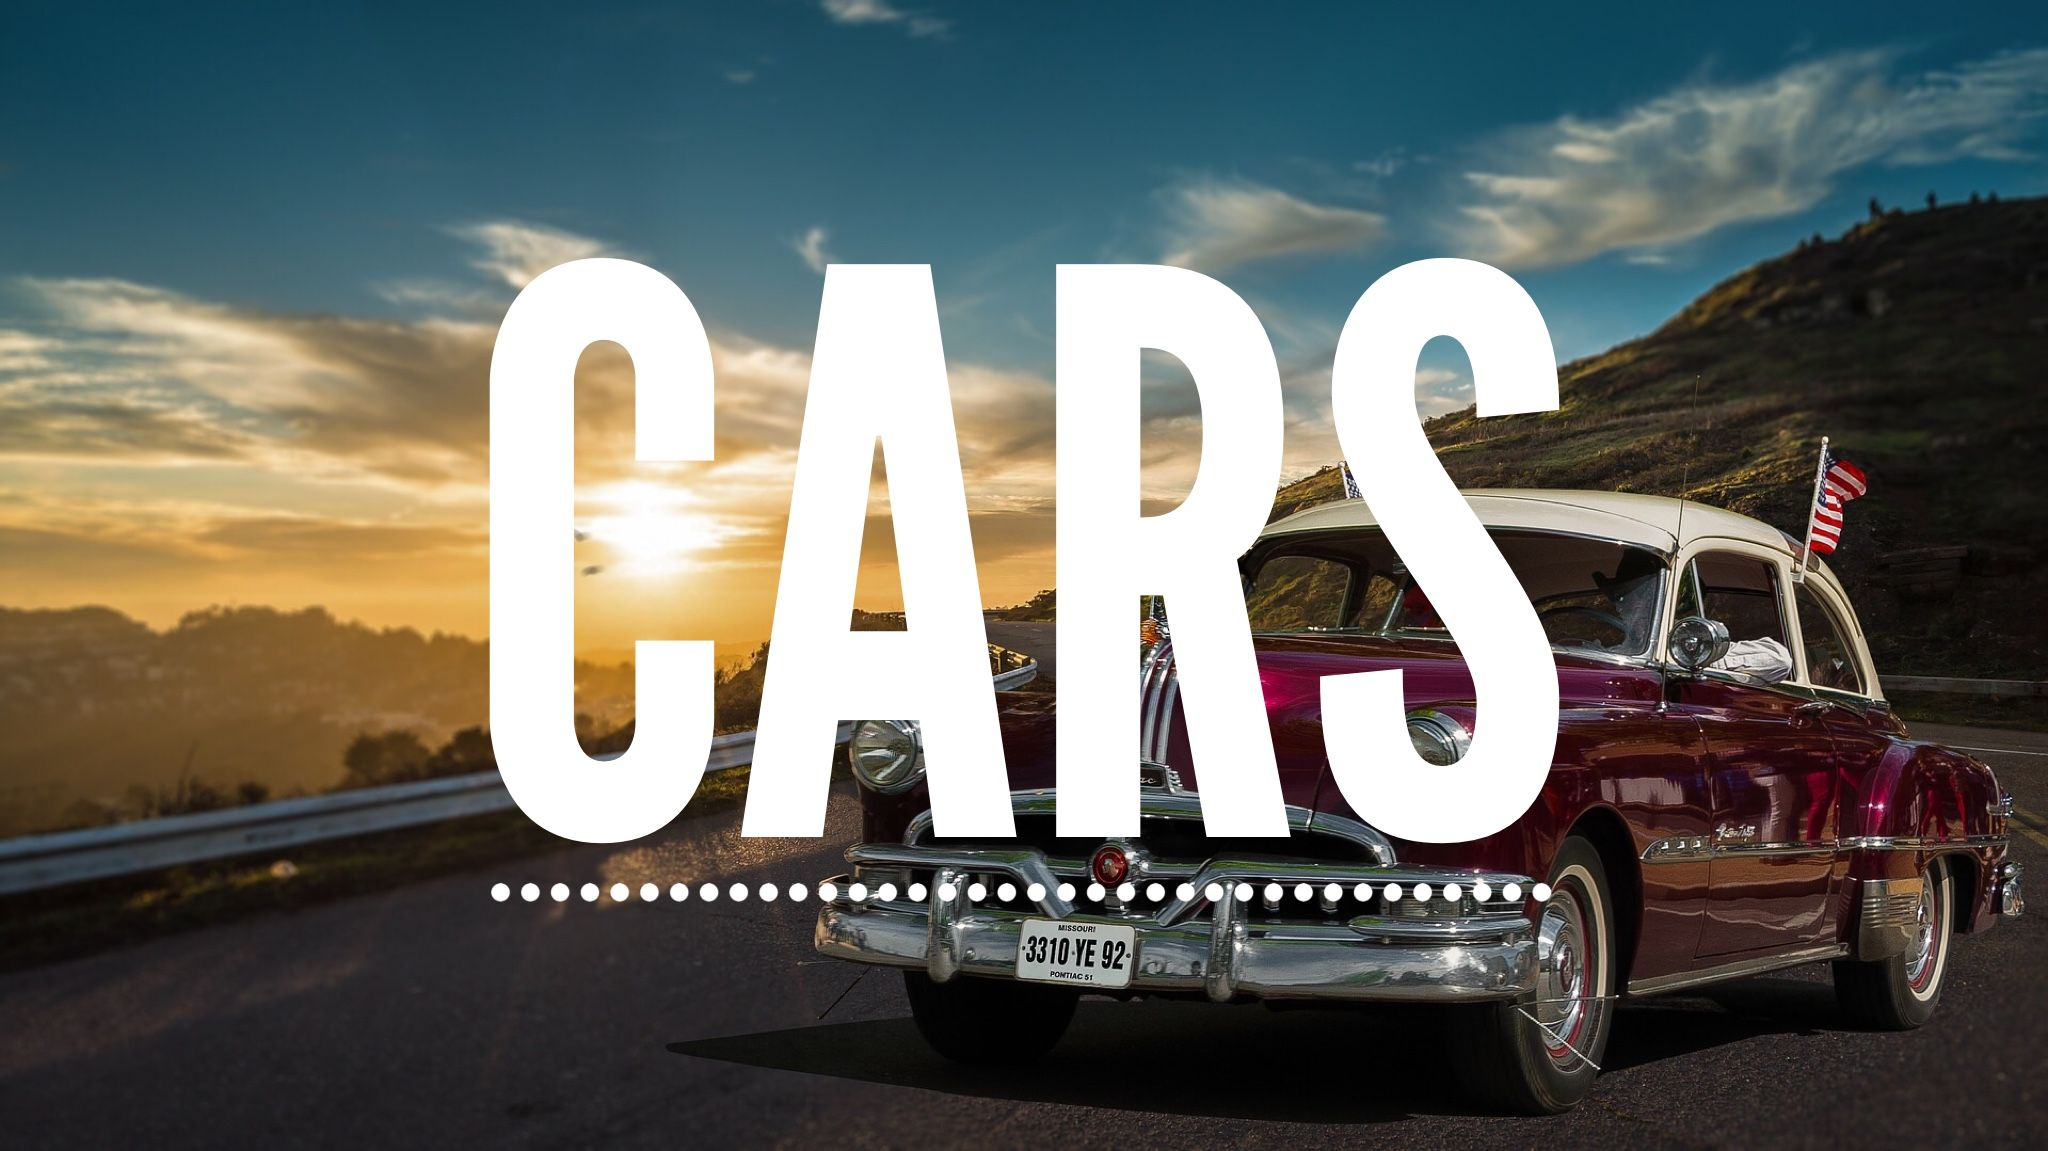 Pin by alicia on Cars